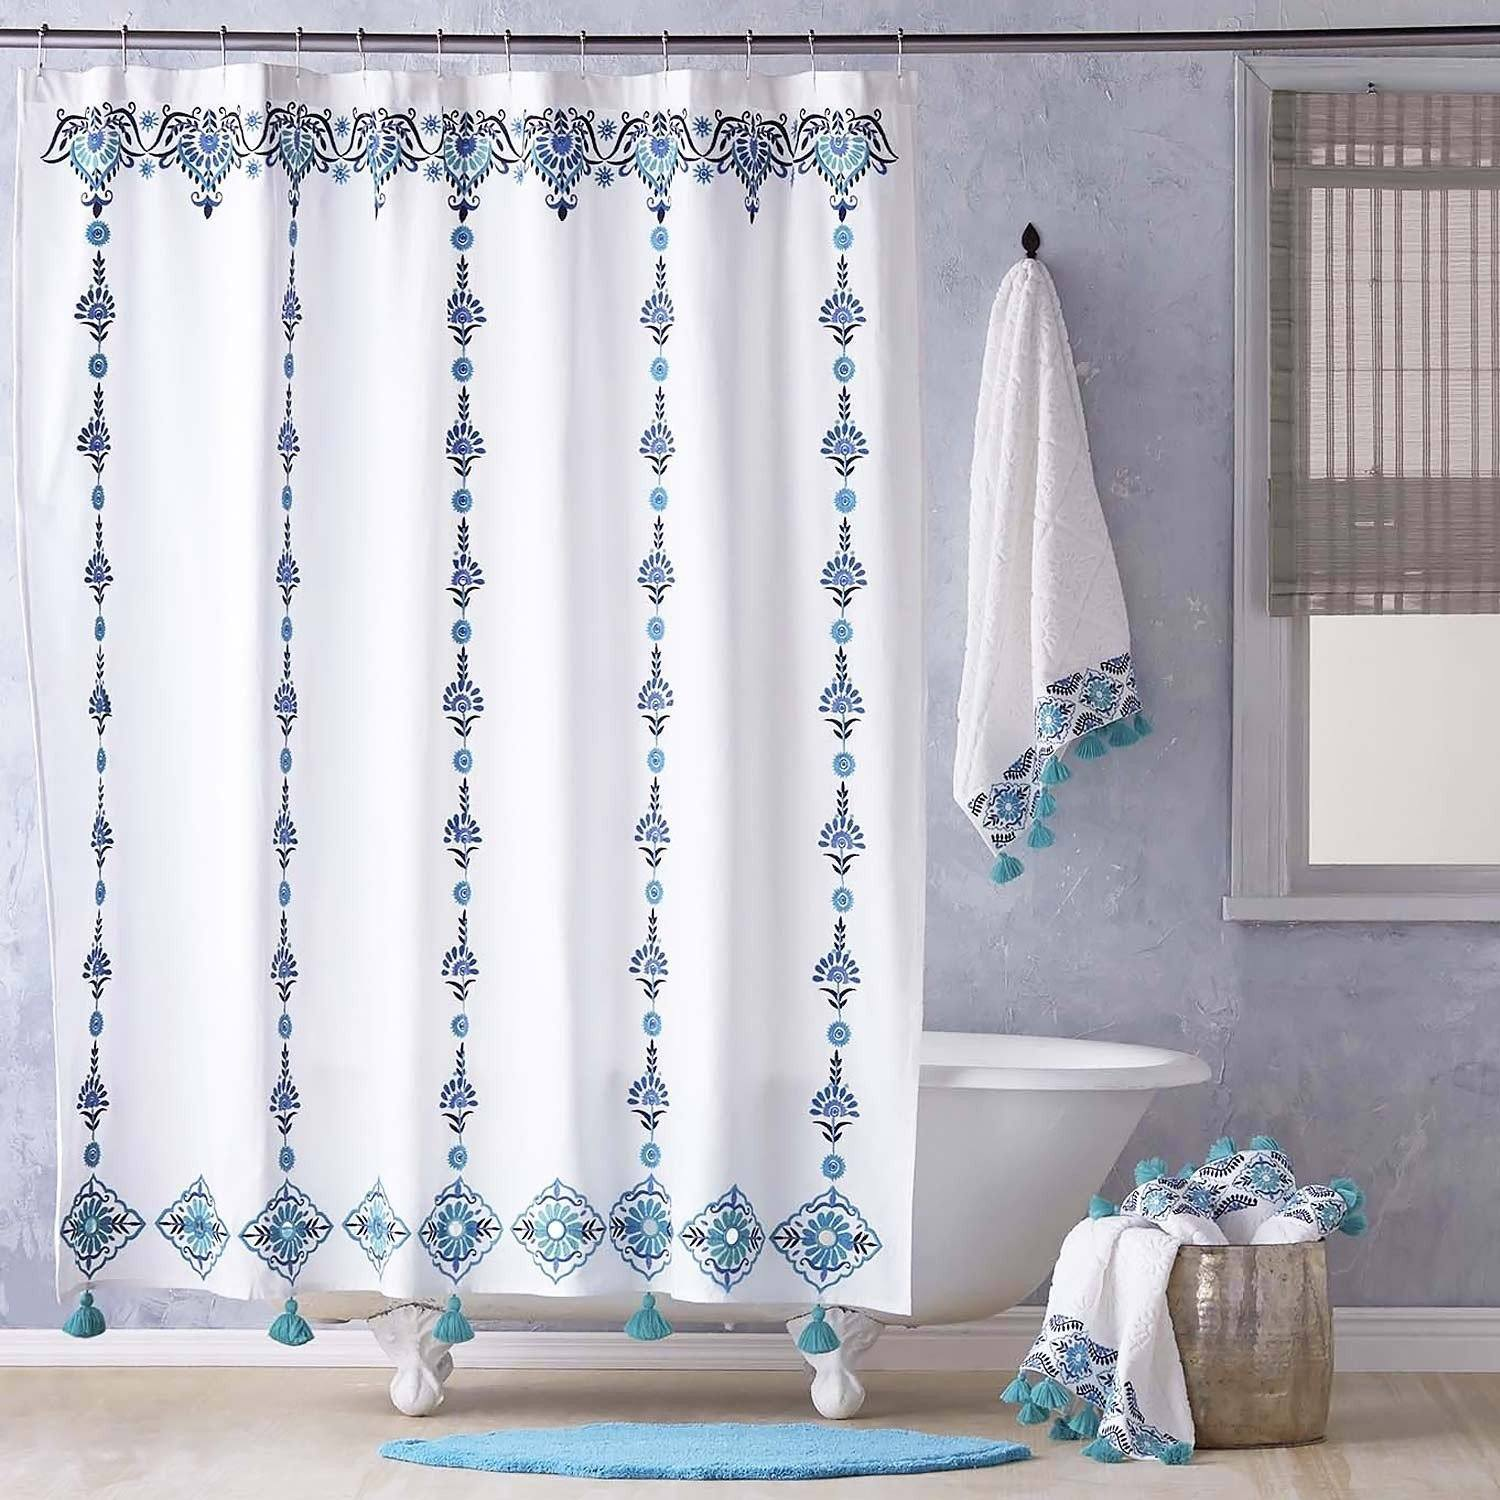 Shower Curtains For Your Bath And Bathroom Fig Linens And Home